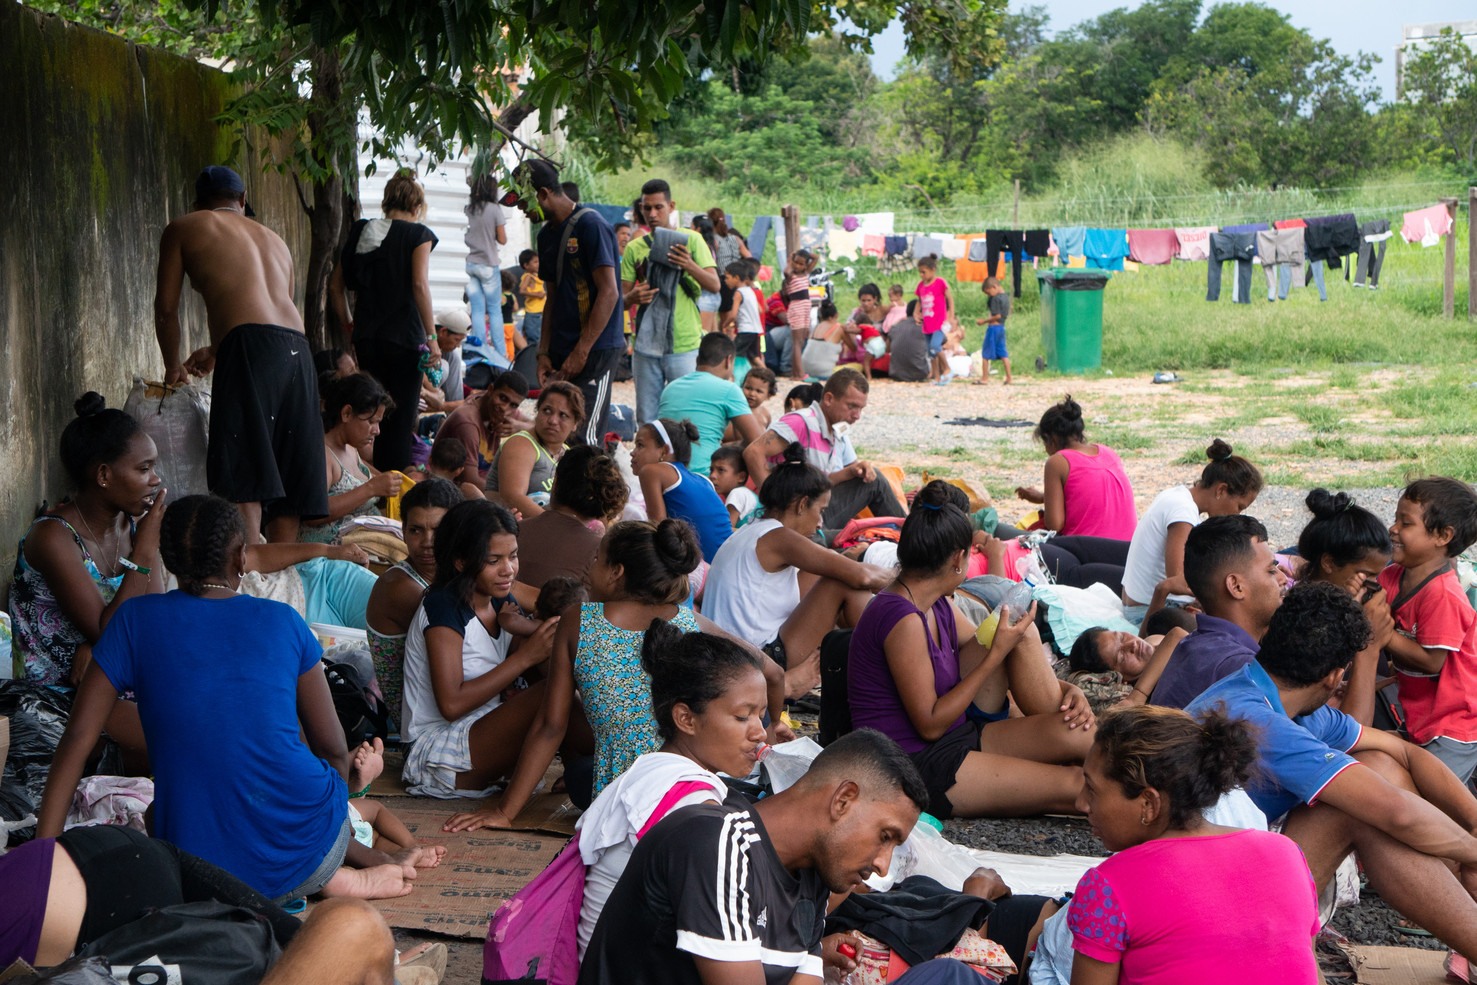 Dozens of homeless Venezuelan immigrants await food in a vacant lot in Boa Vista capital, Roraima state, Brazil, July 2019.